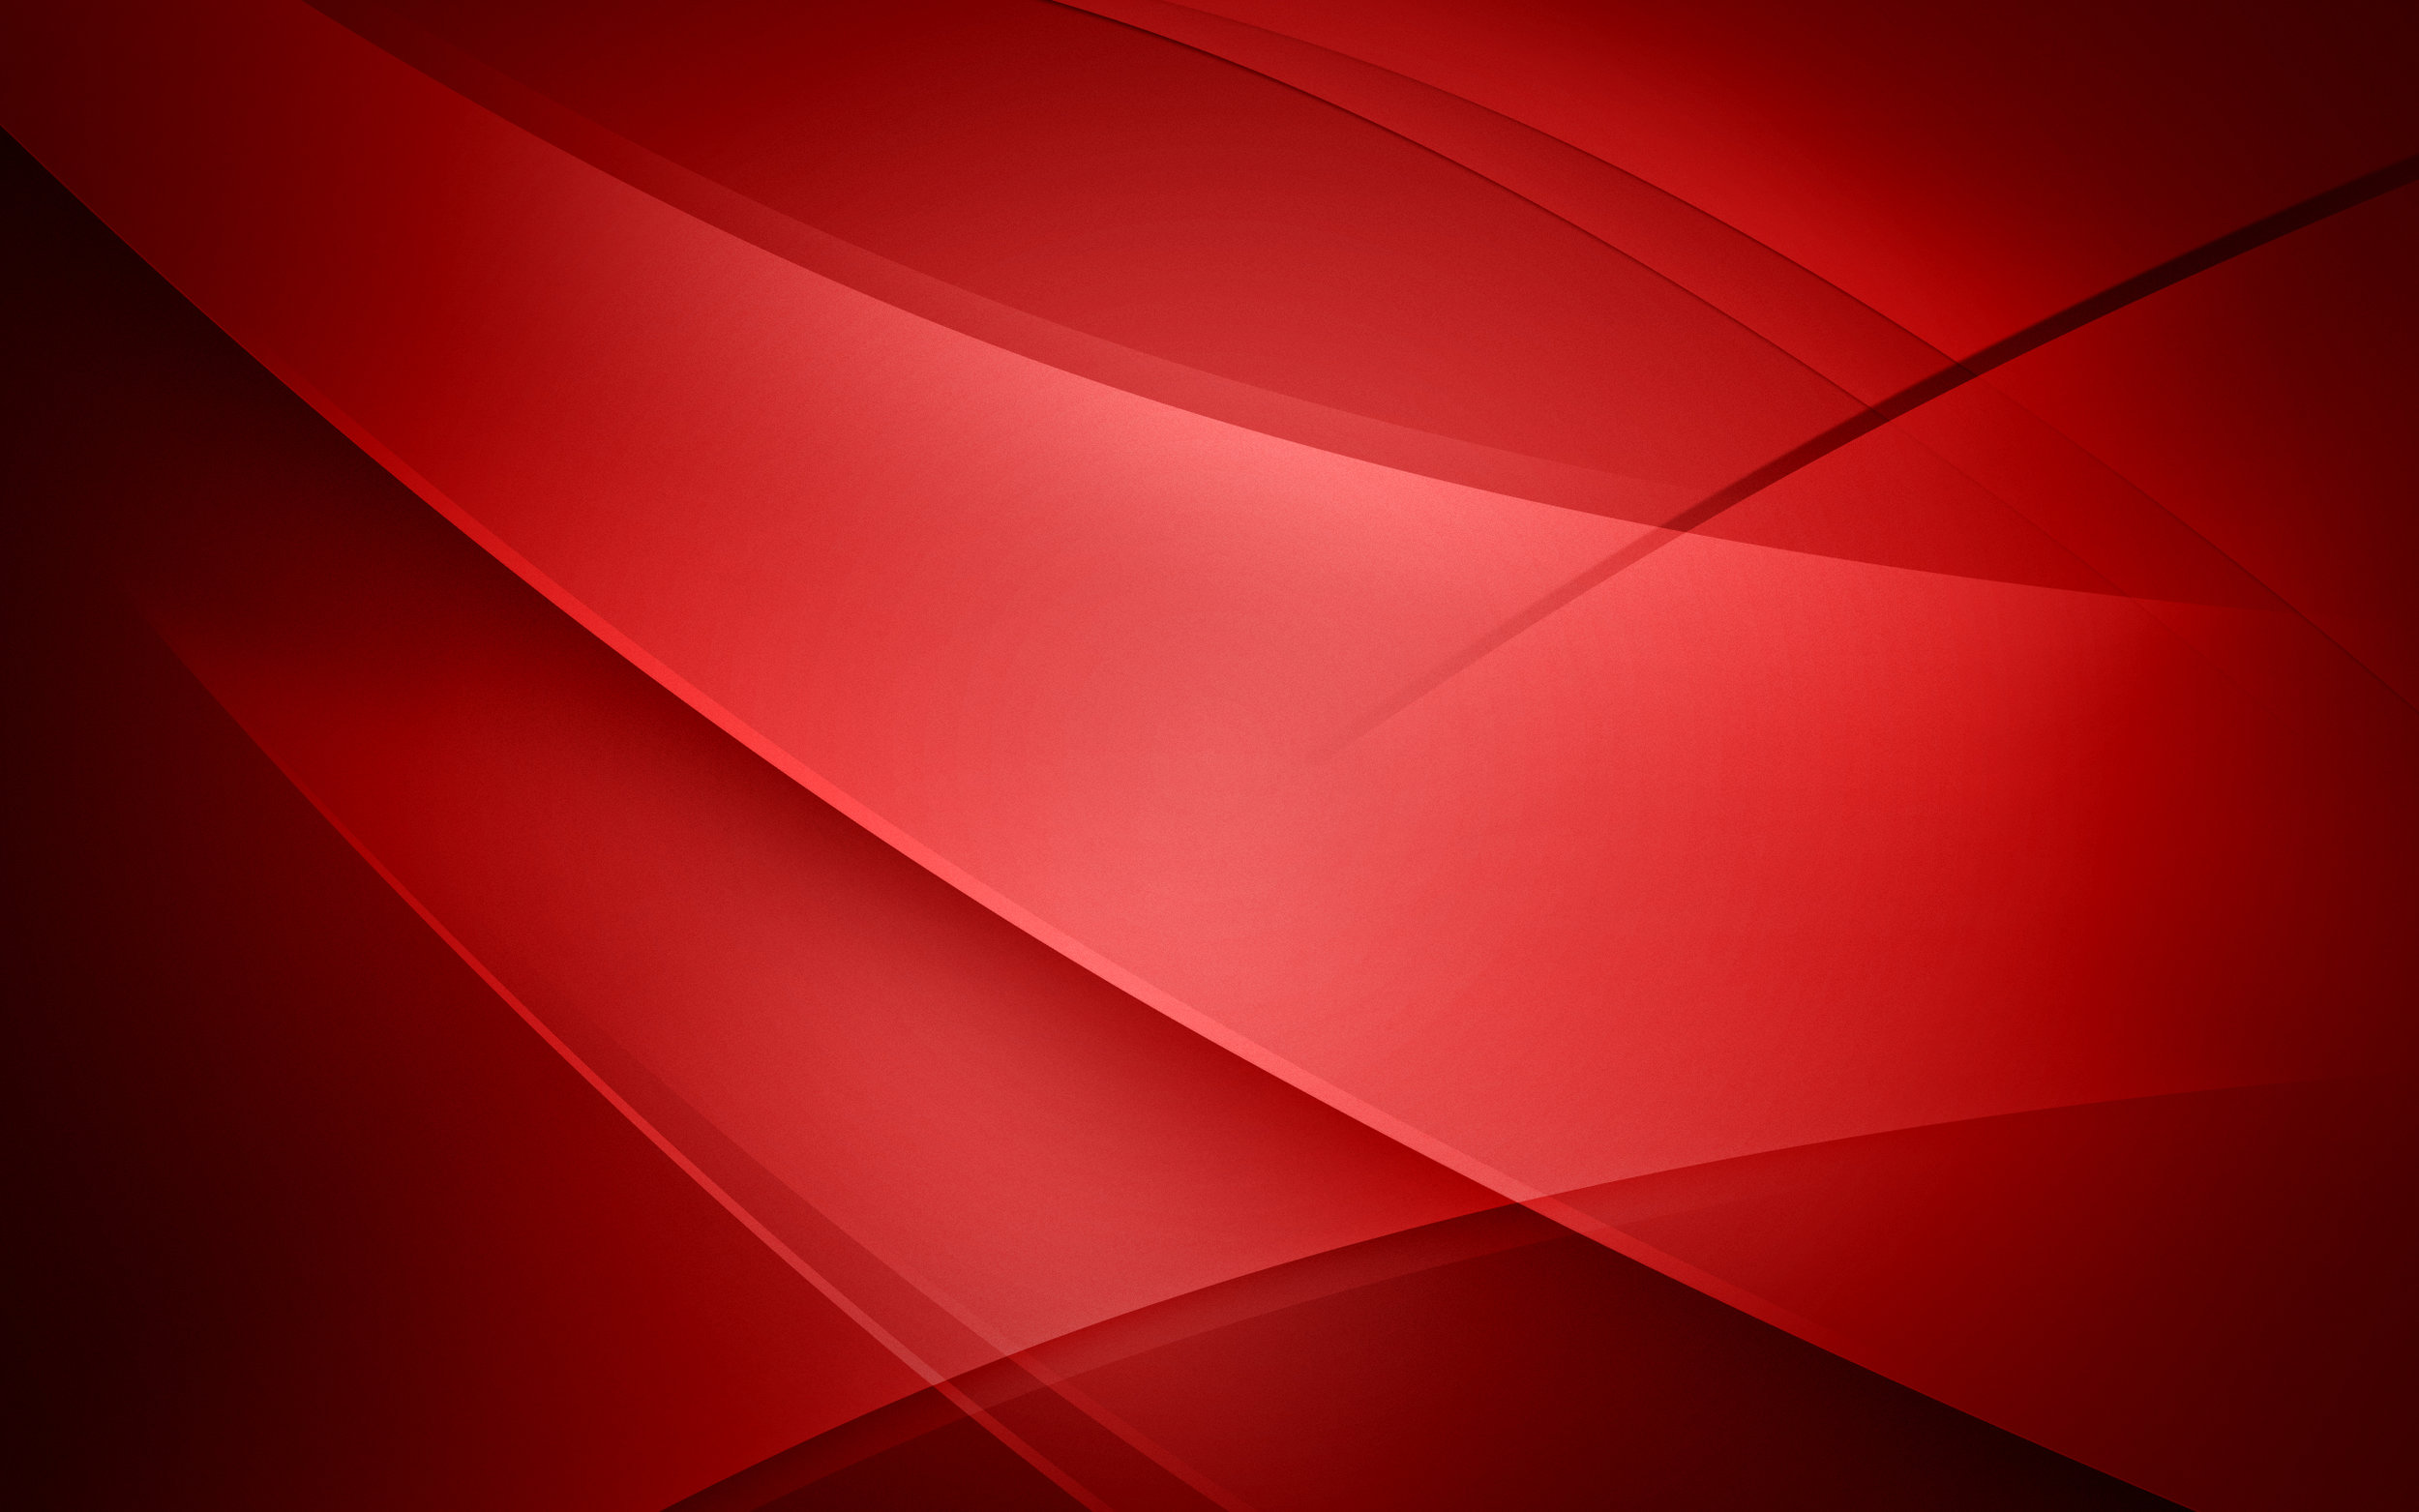 red-abstract-bg.jpg